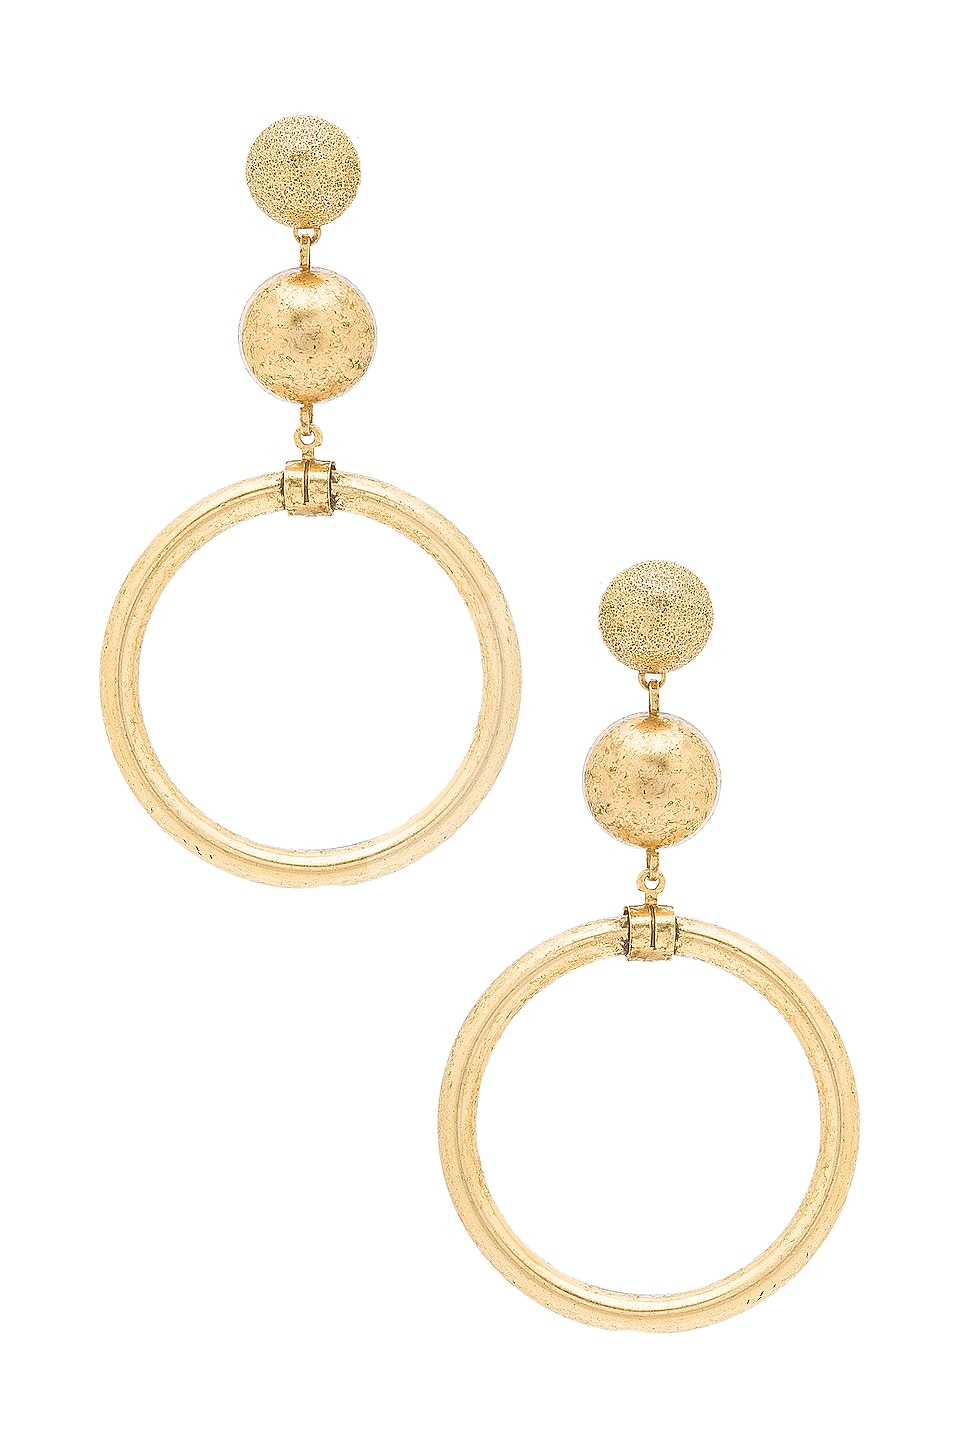 Elizabeth Cole Drop Earrings in Gold